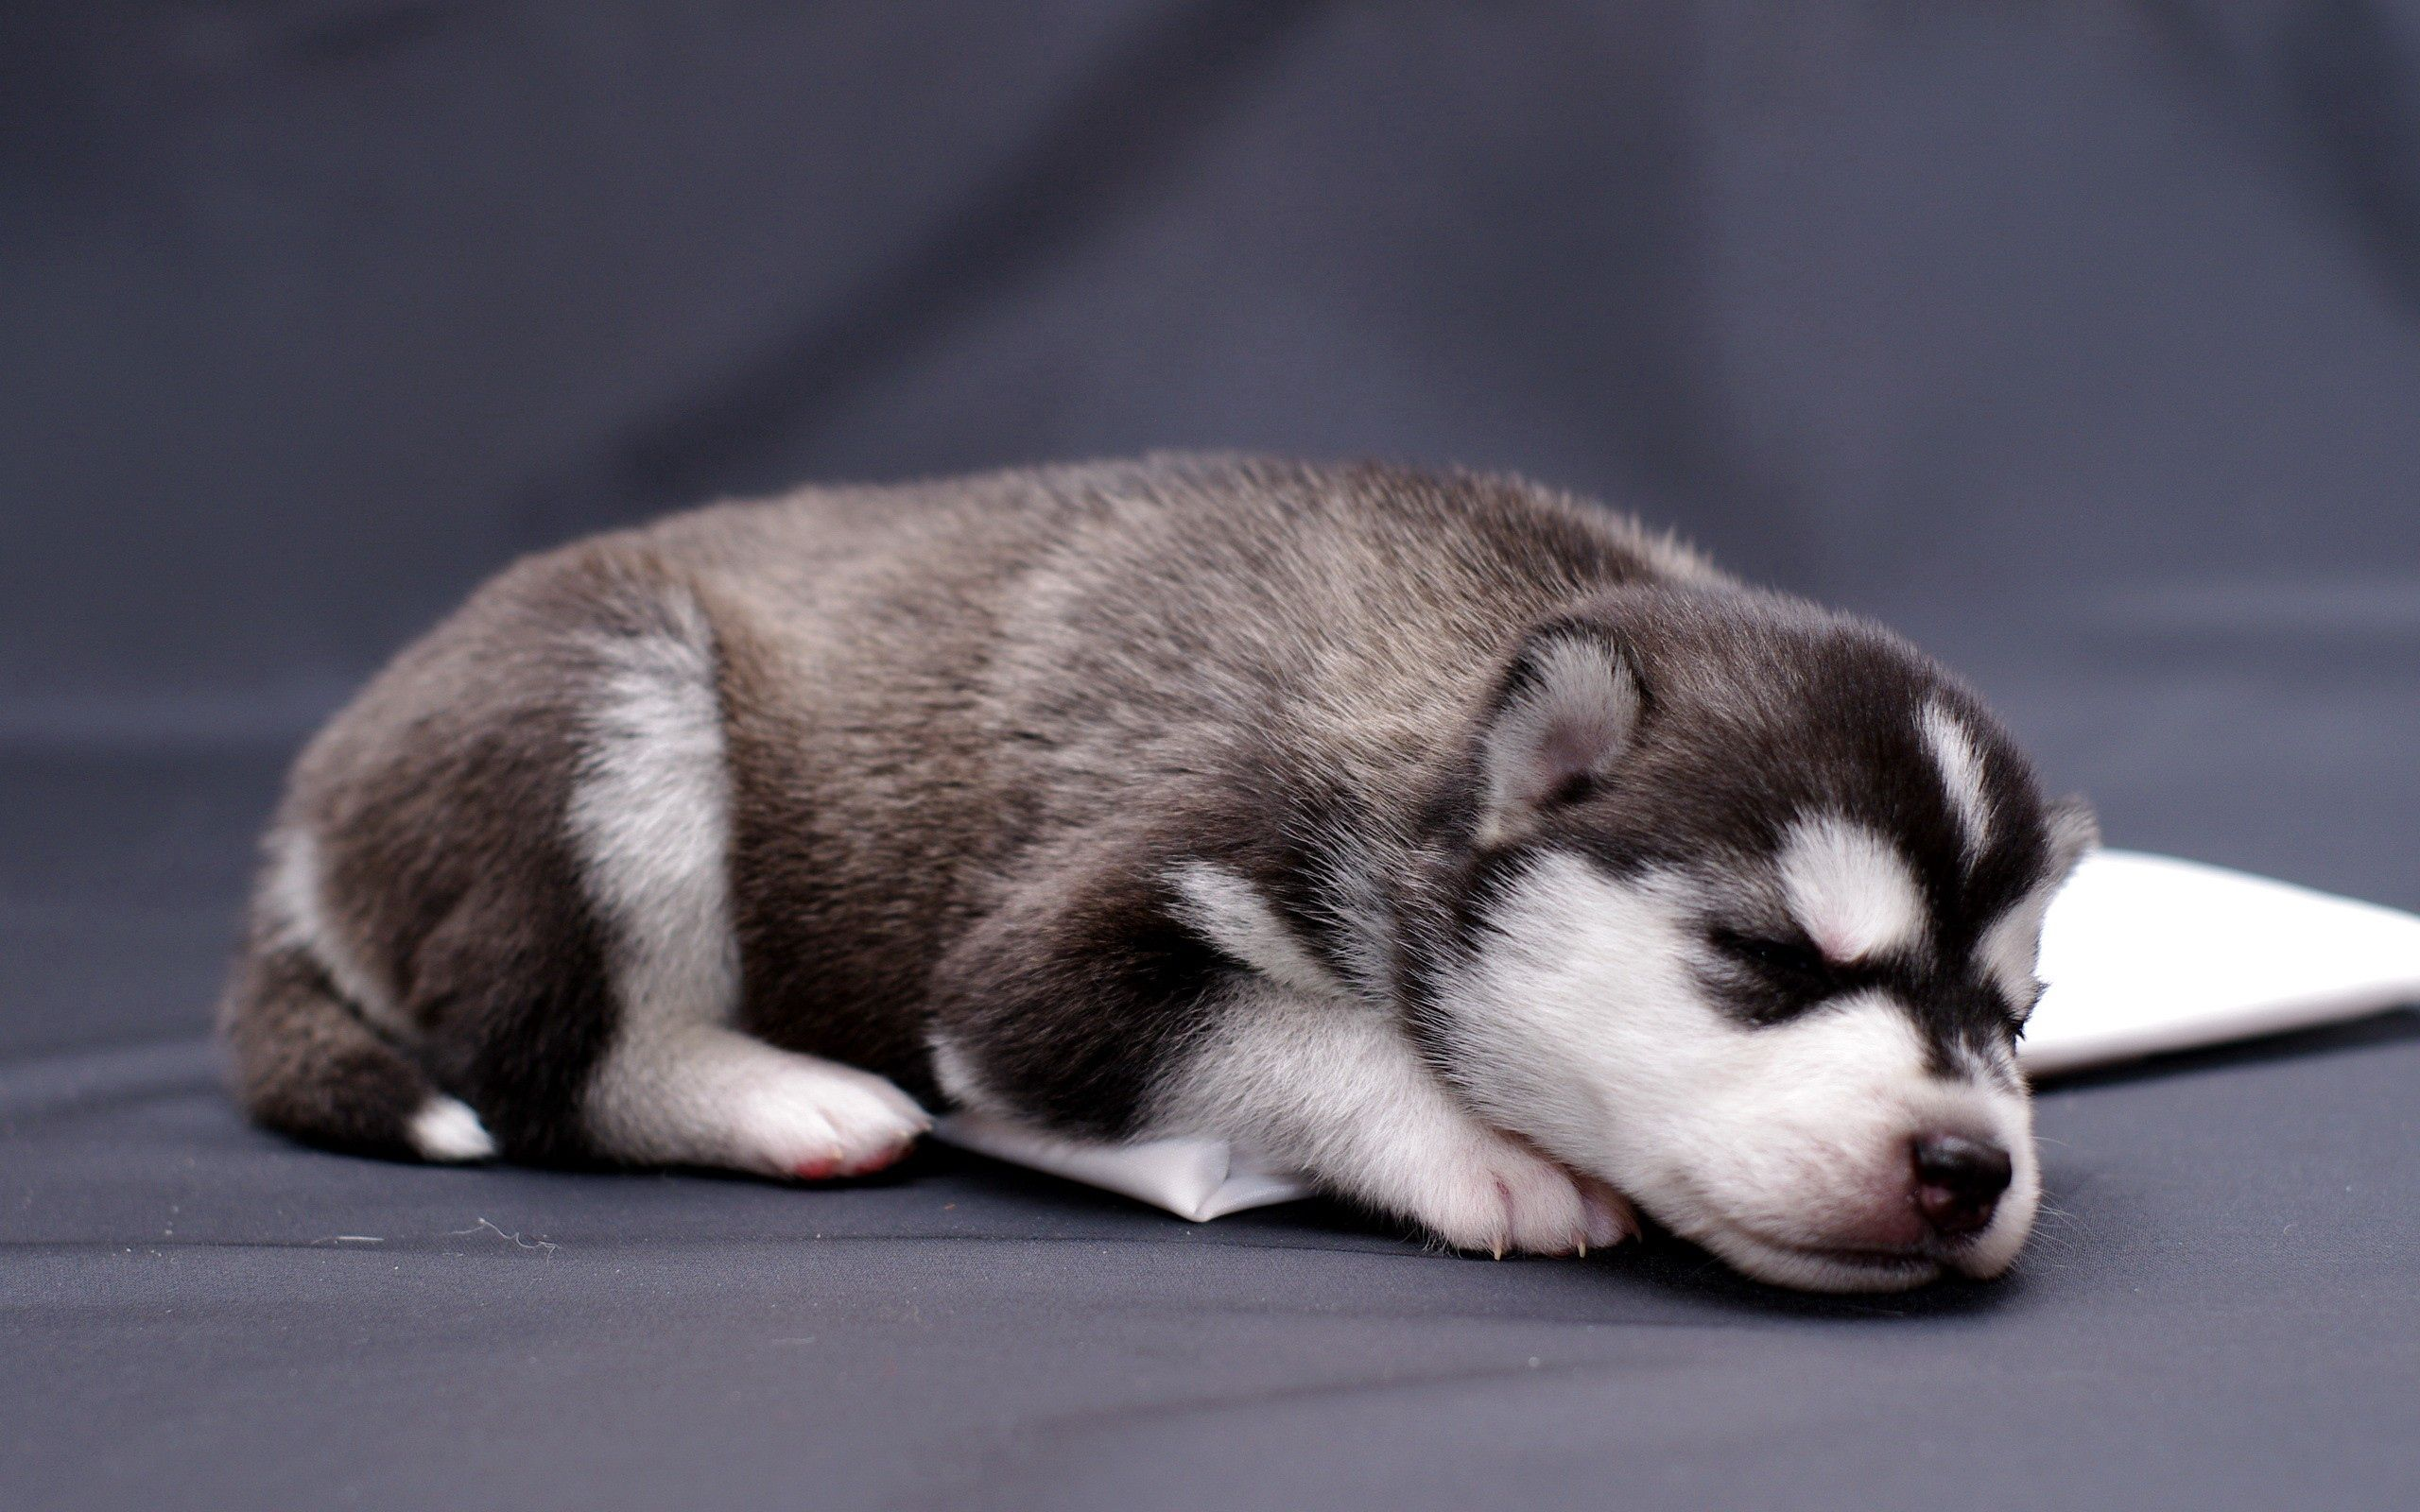 86978 download wallpaper Animals, Husky, Haska, Puppy, To Lie Down, Lie screensavers and pictures for free